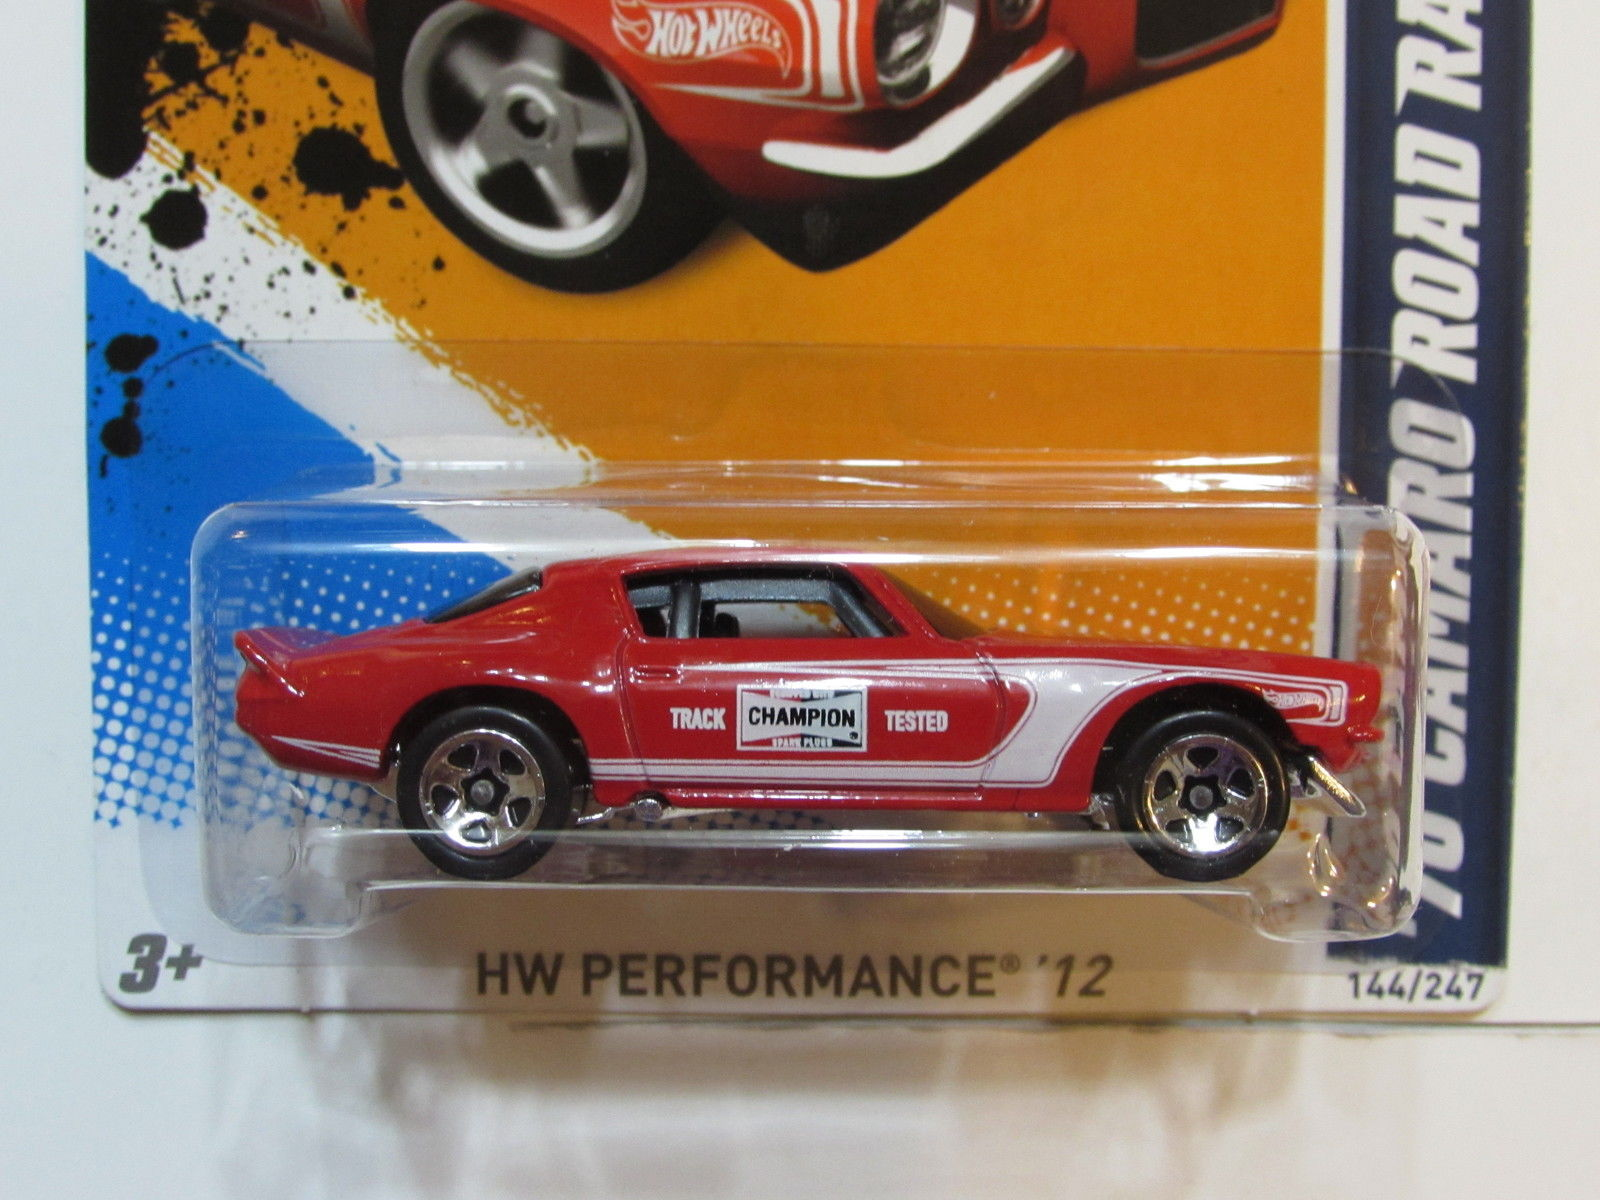 HOT WHEELS 2012 HW PERFORMANCE 70 CAMARO ROAD RACE FACTORY SEALED